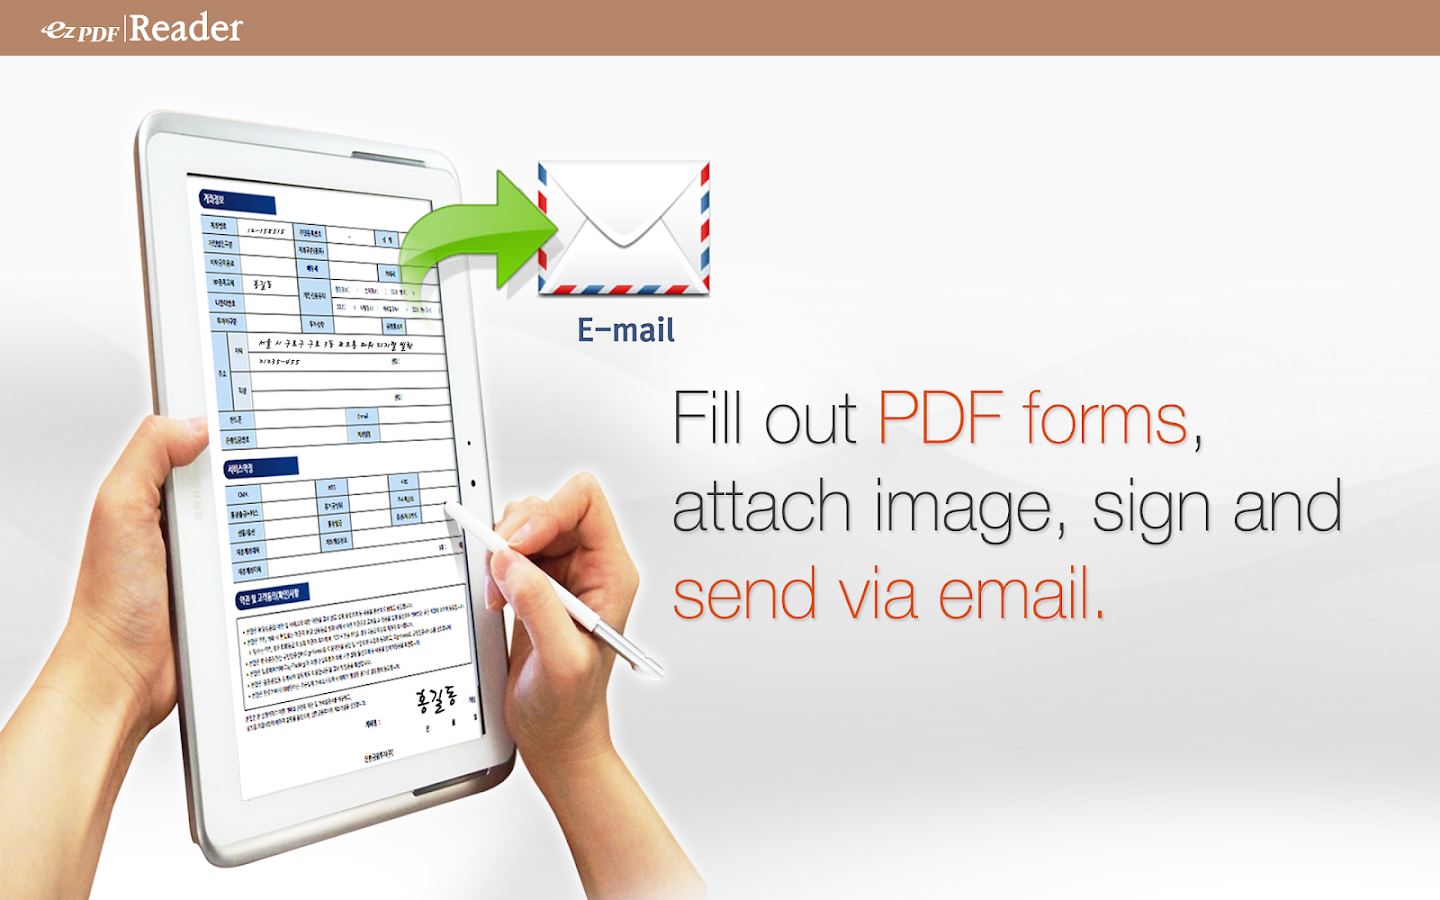 ezPDF Reader PDF Annotate Form Screenshot 3